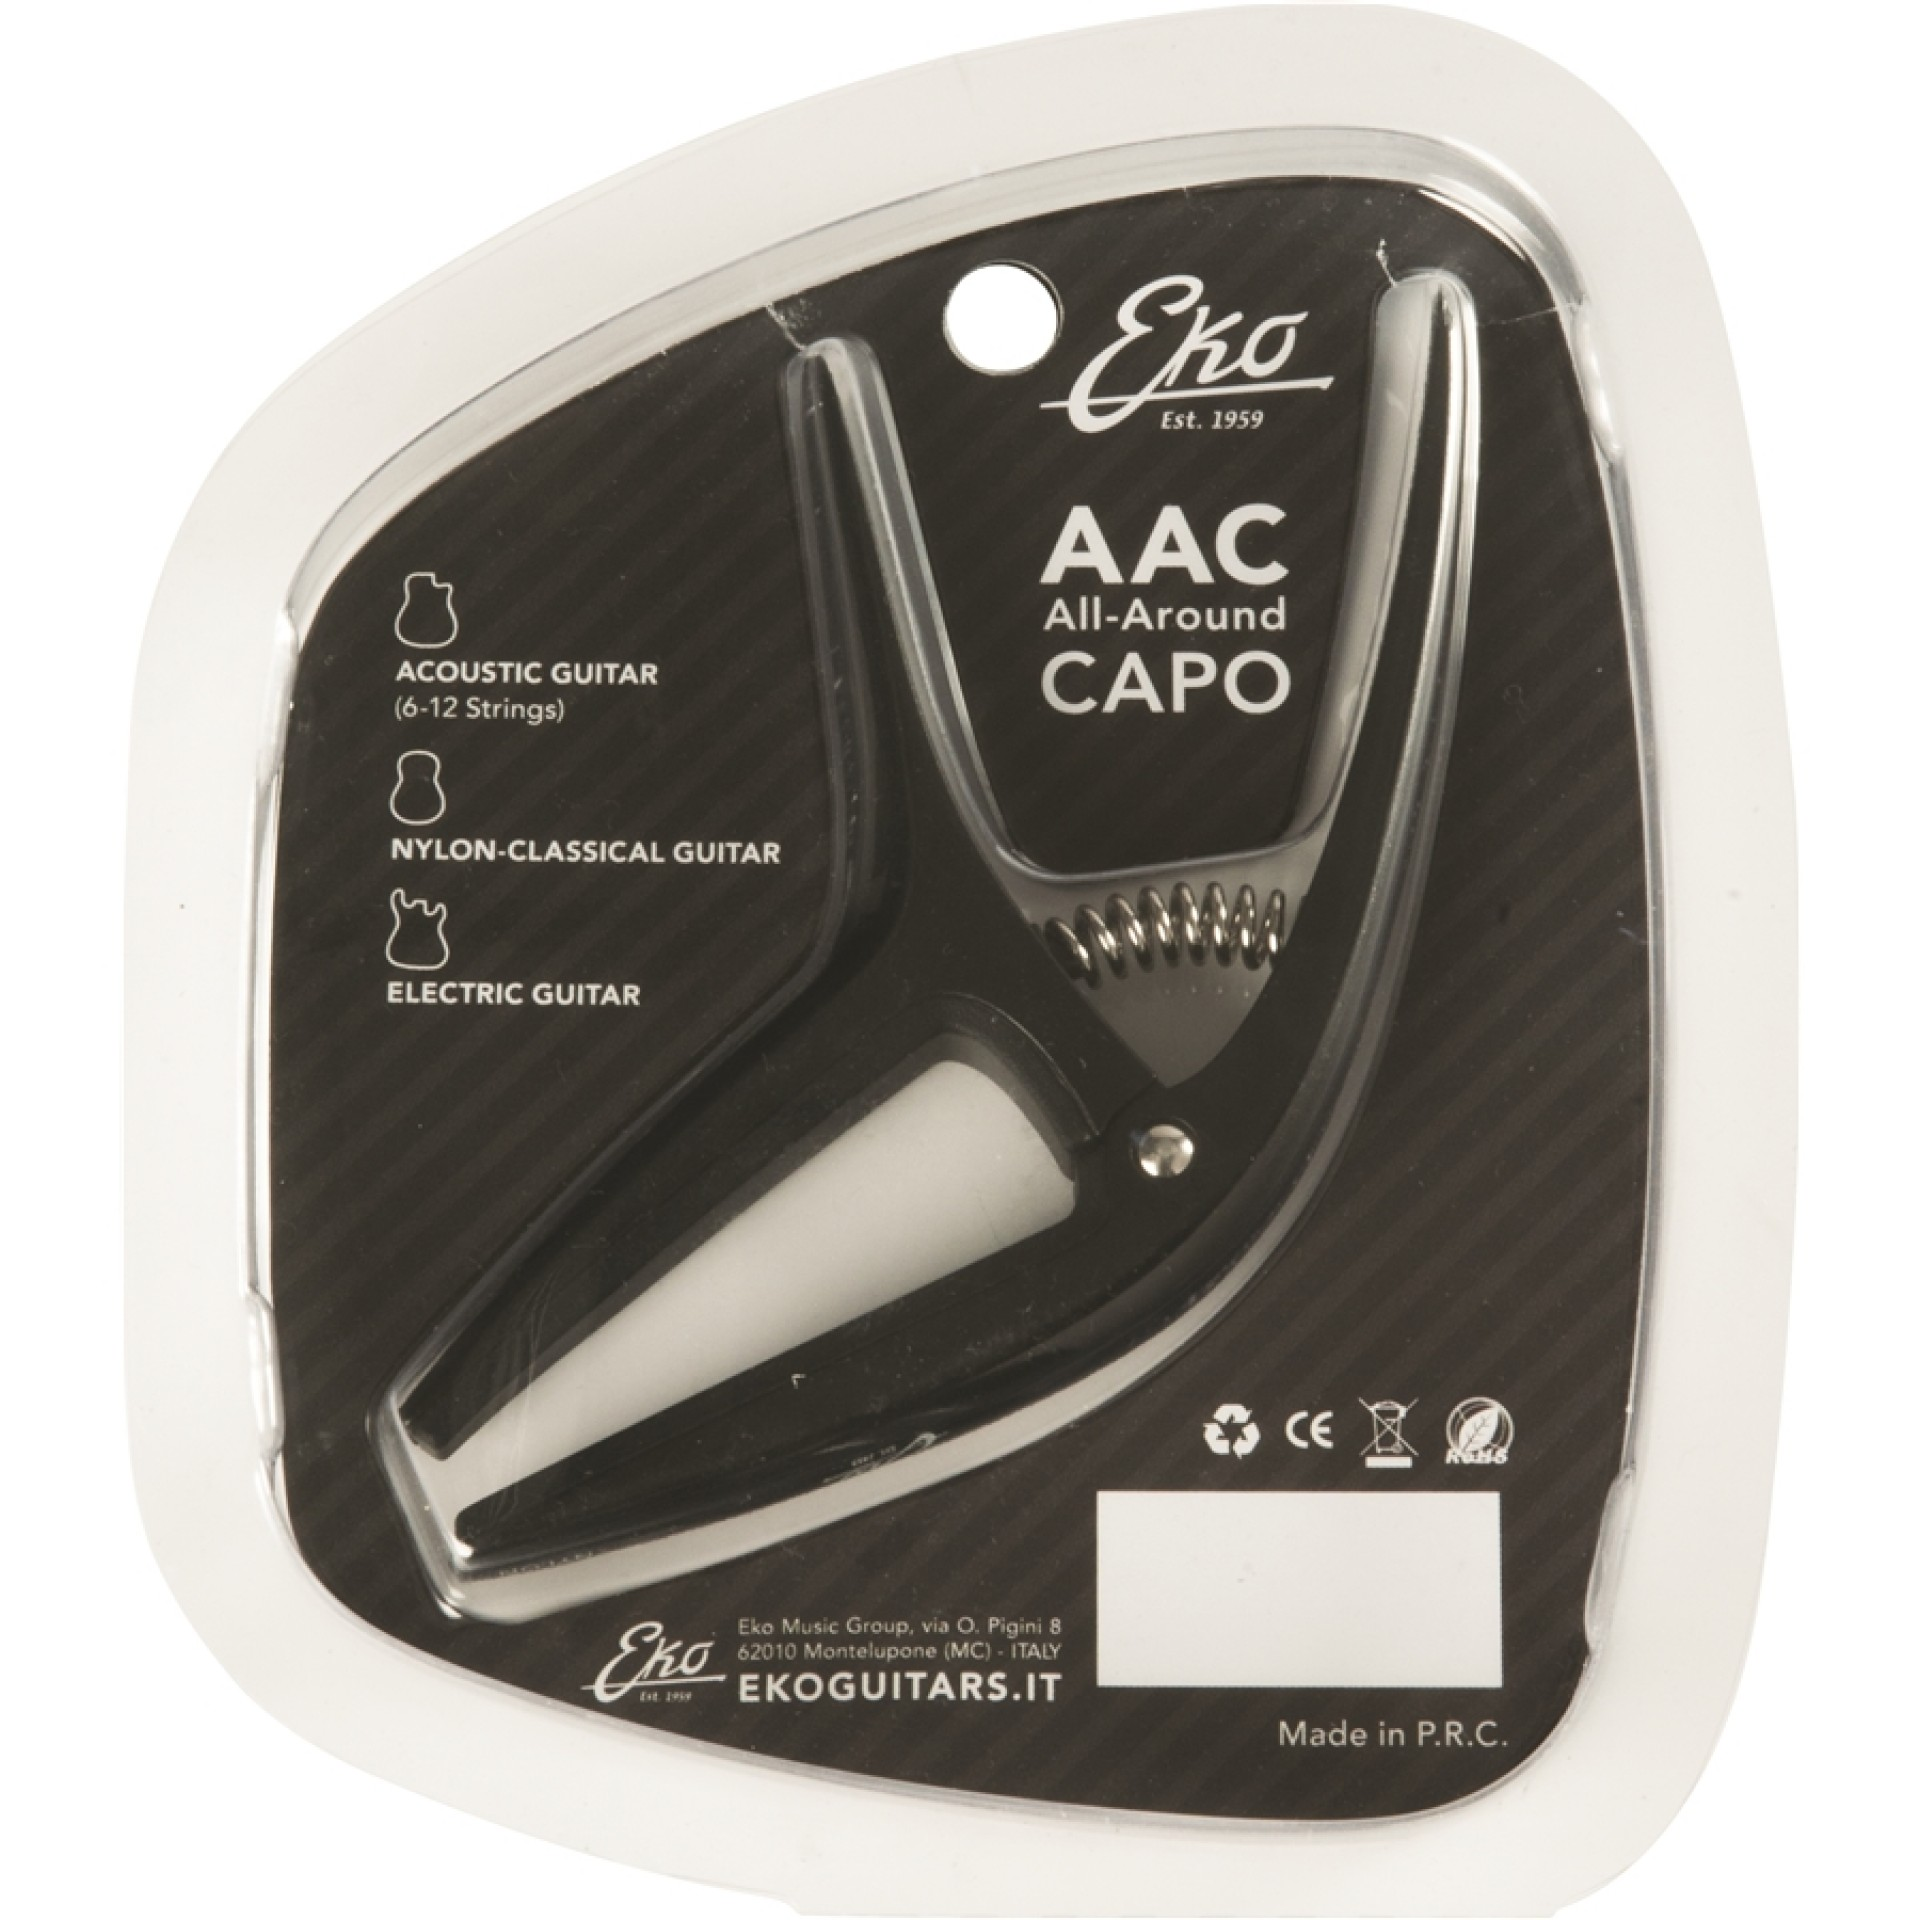 EKO AAC All-Around Capo